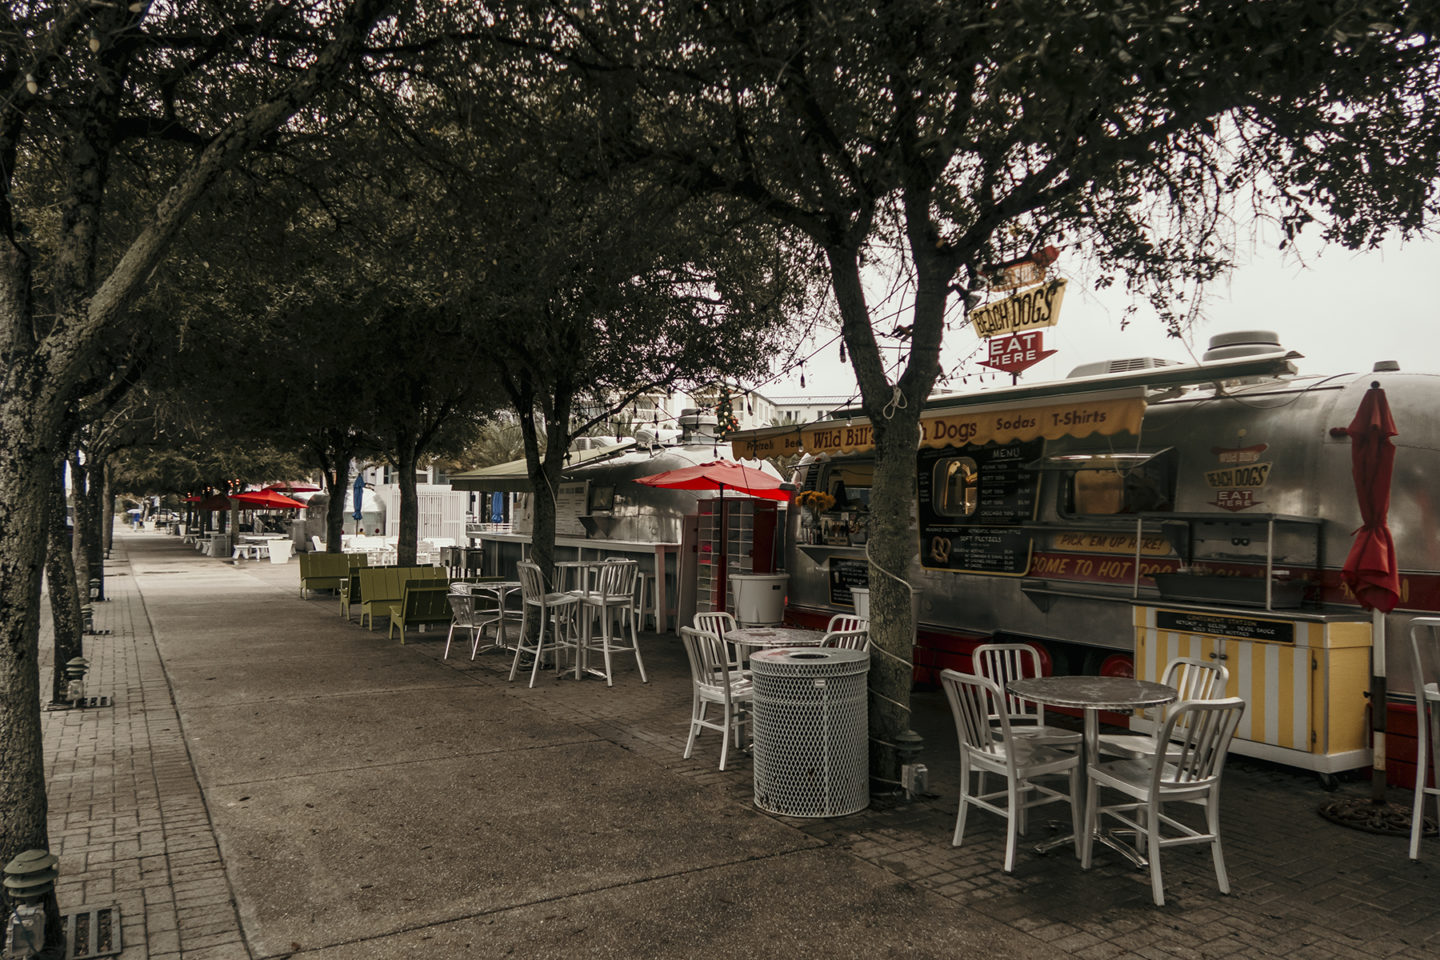 Food Truck Alley Row in Seaside Florida